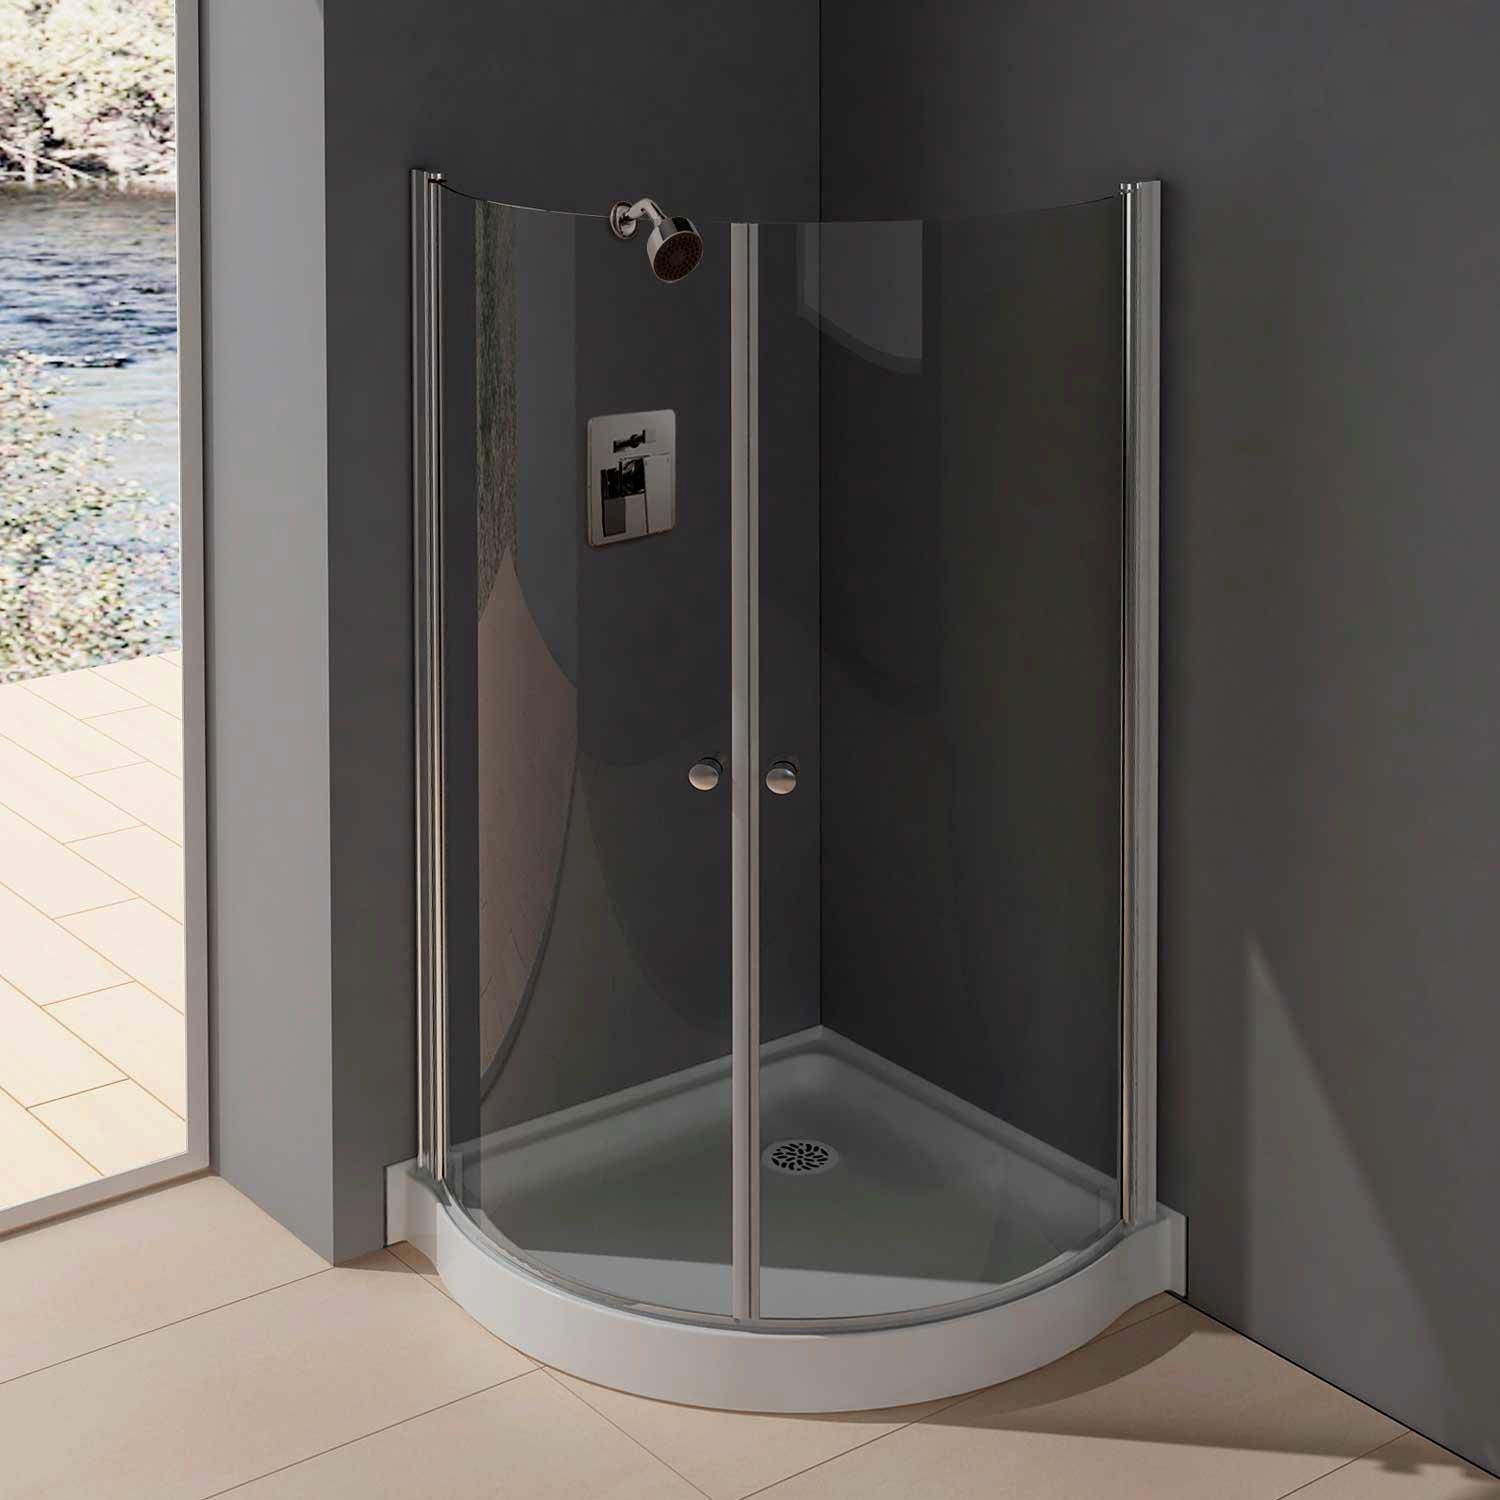 best of bathroom stall hardware picture-New Bathroom Stall Hardware Online